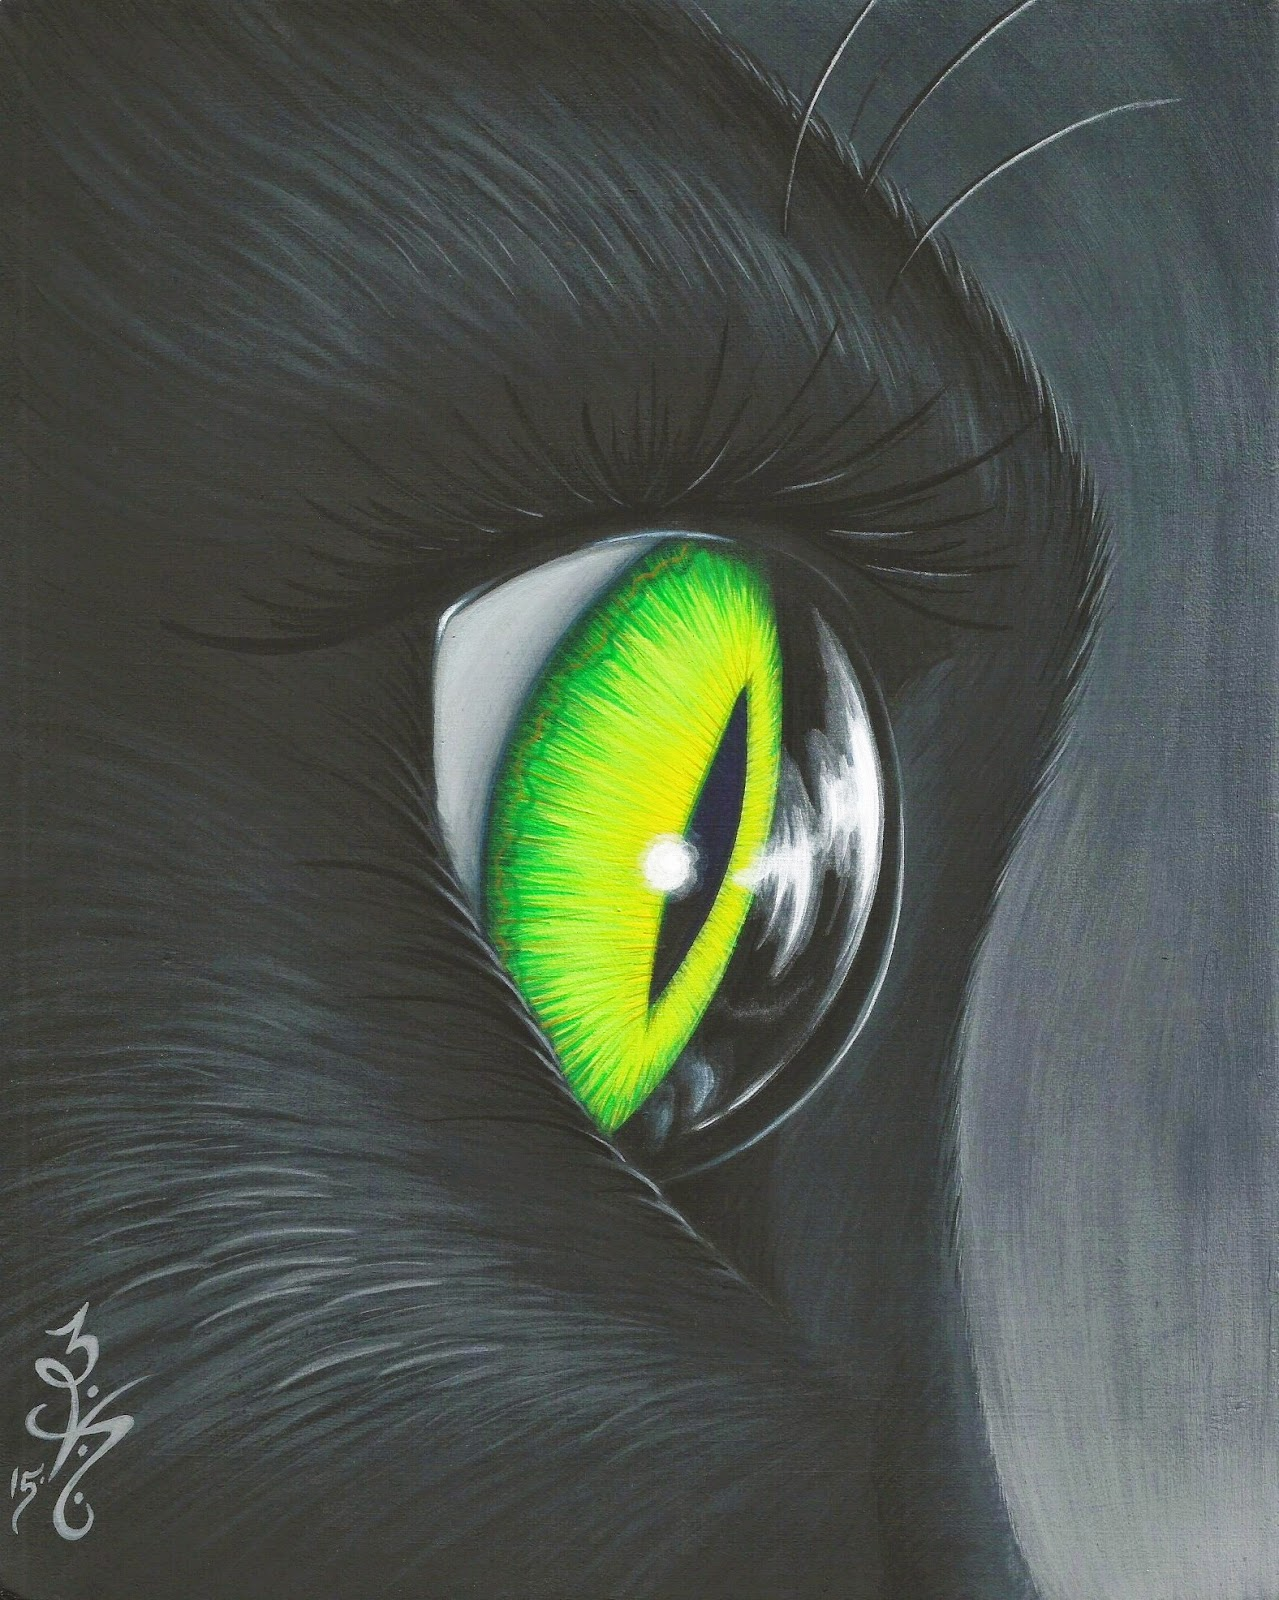 https://www.etsy.com/listing/227544190/original-fantasy-black-cat-green-eye?ref=shop_home_active_1